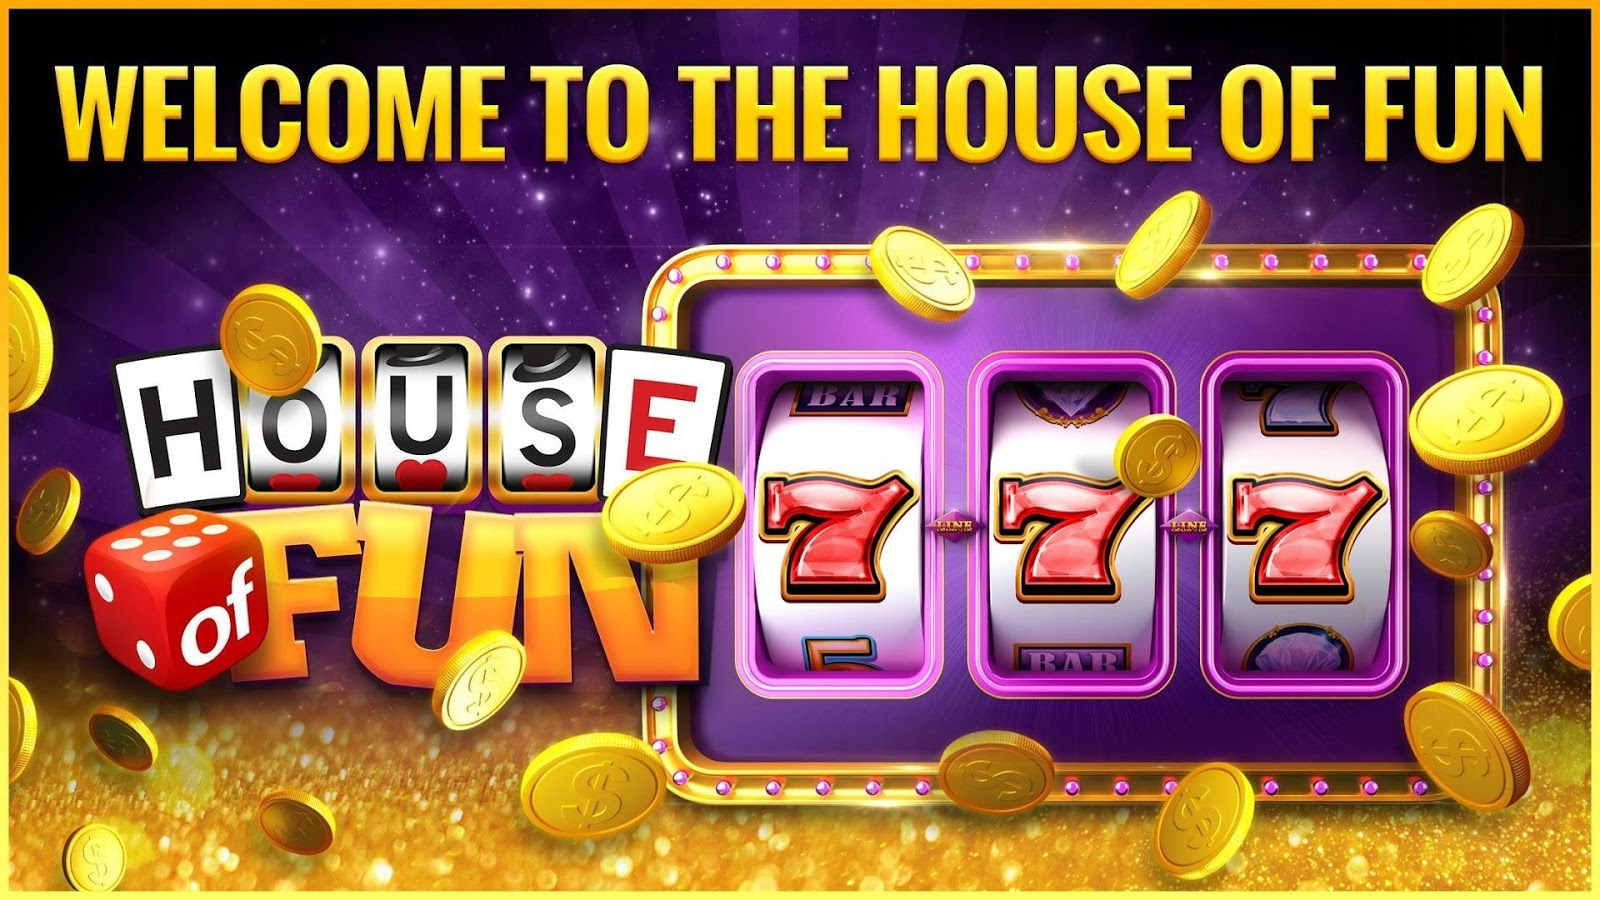 House Of Fun Slots App